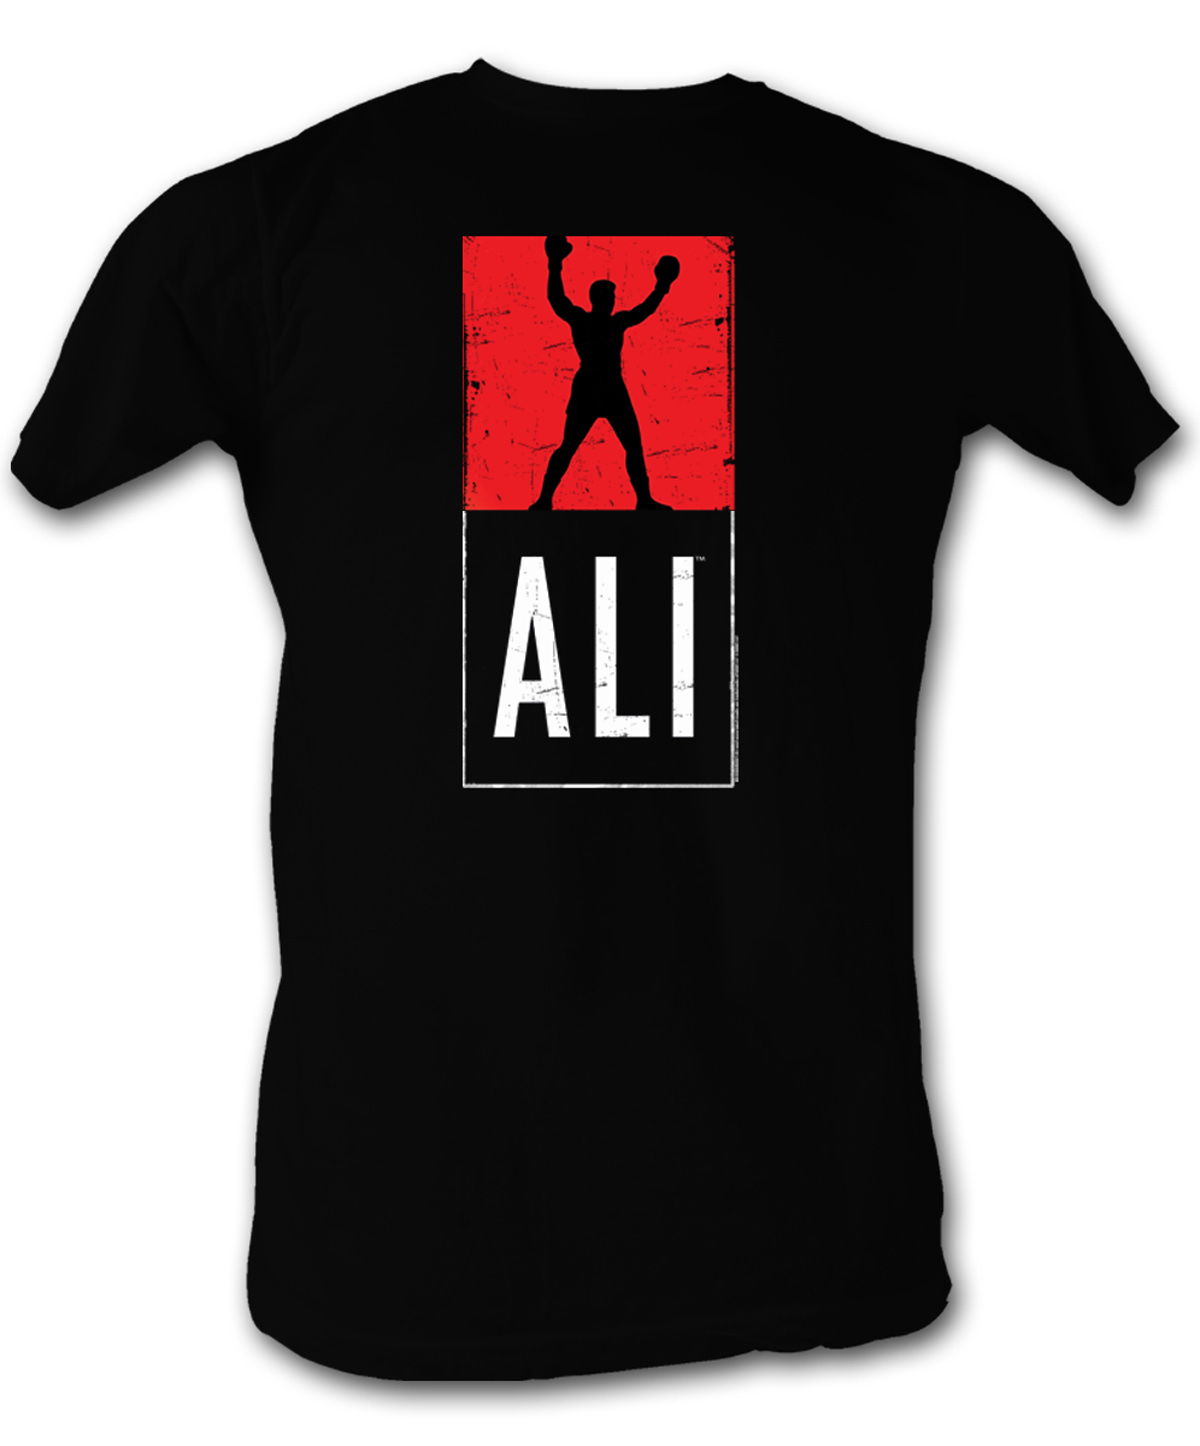 muhammad ali t shirt ali logo adult black tee shirt. Black Bedroom Furniture Sets. Home Design Ideas